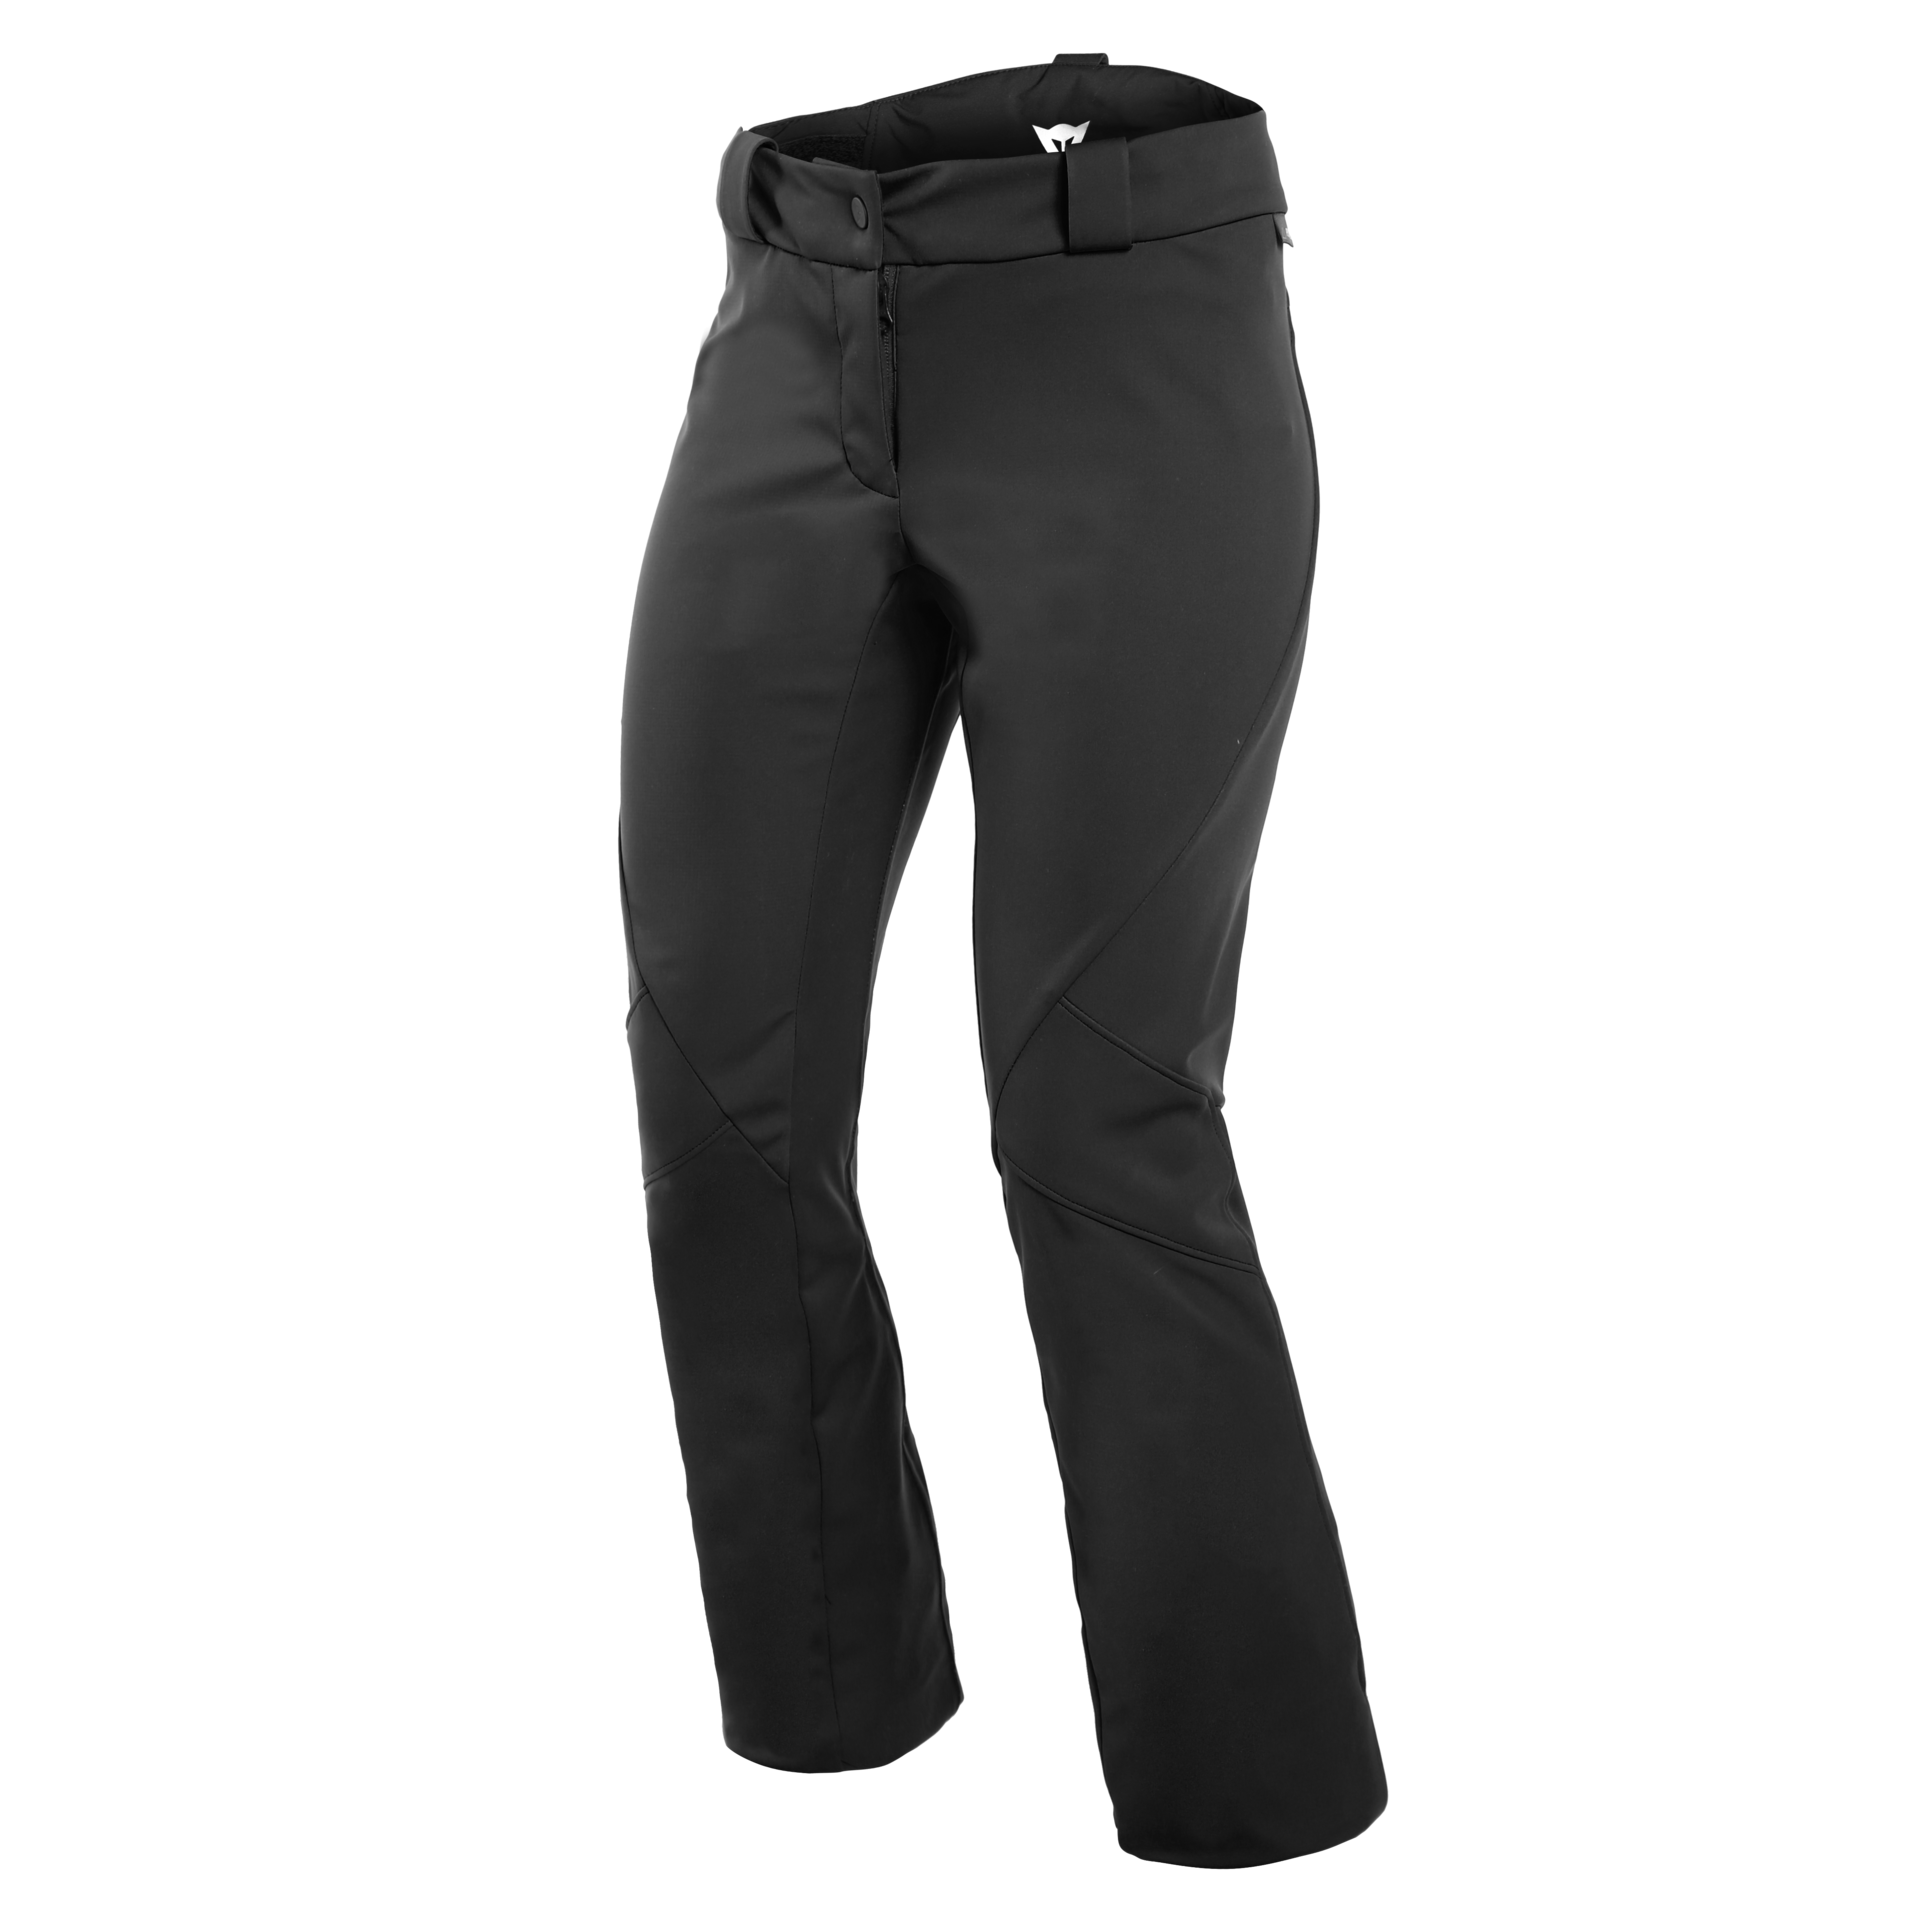 DAINESE PANT. AWA P L2 - (Y41 STRETCH LIMO ) - 2019